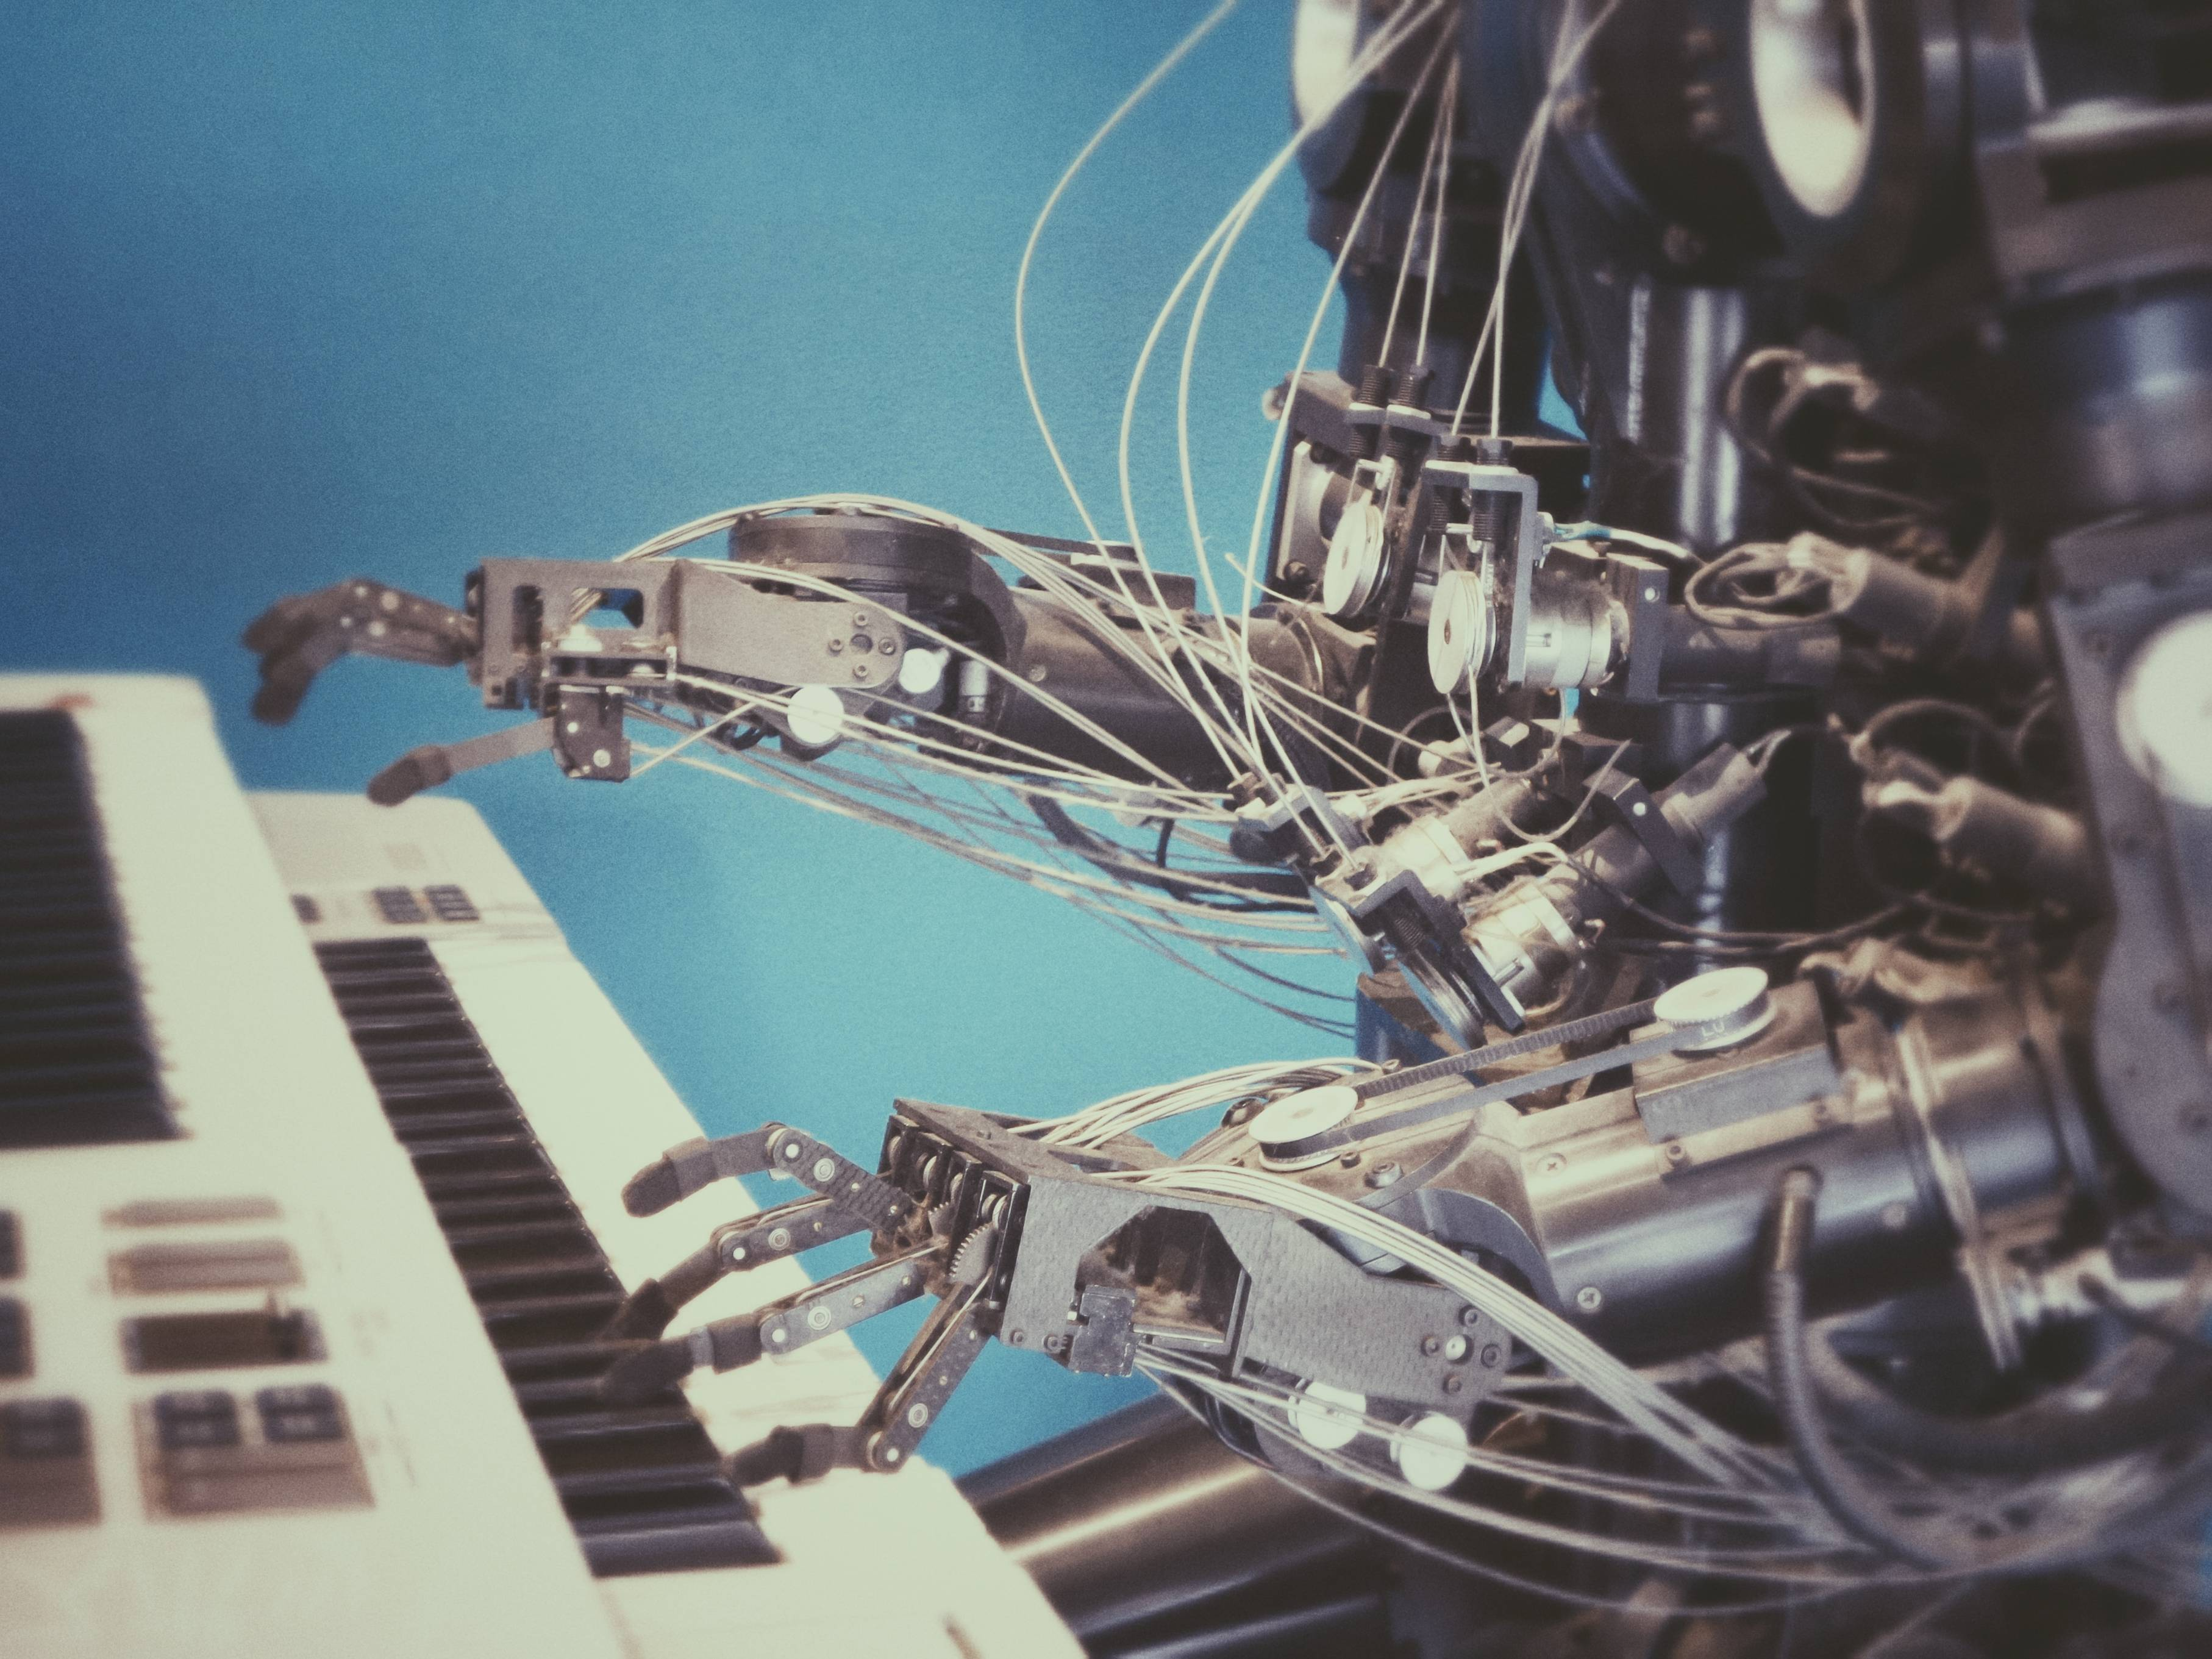 An image of a robot playing a piano.